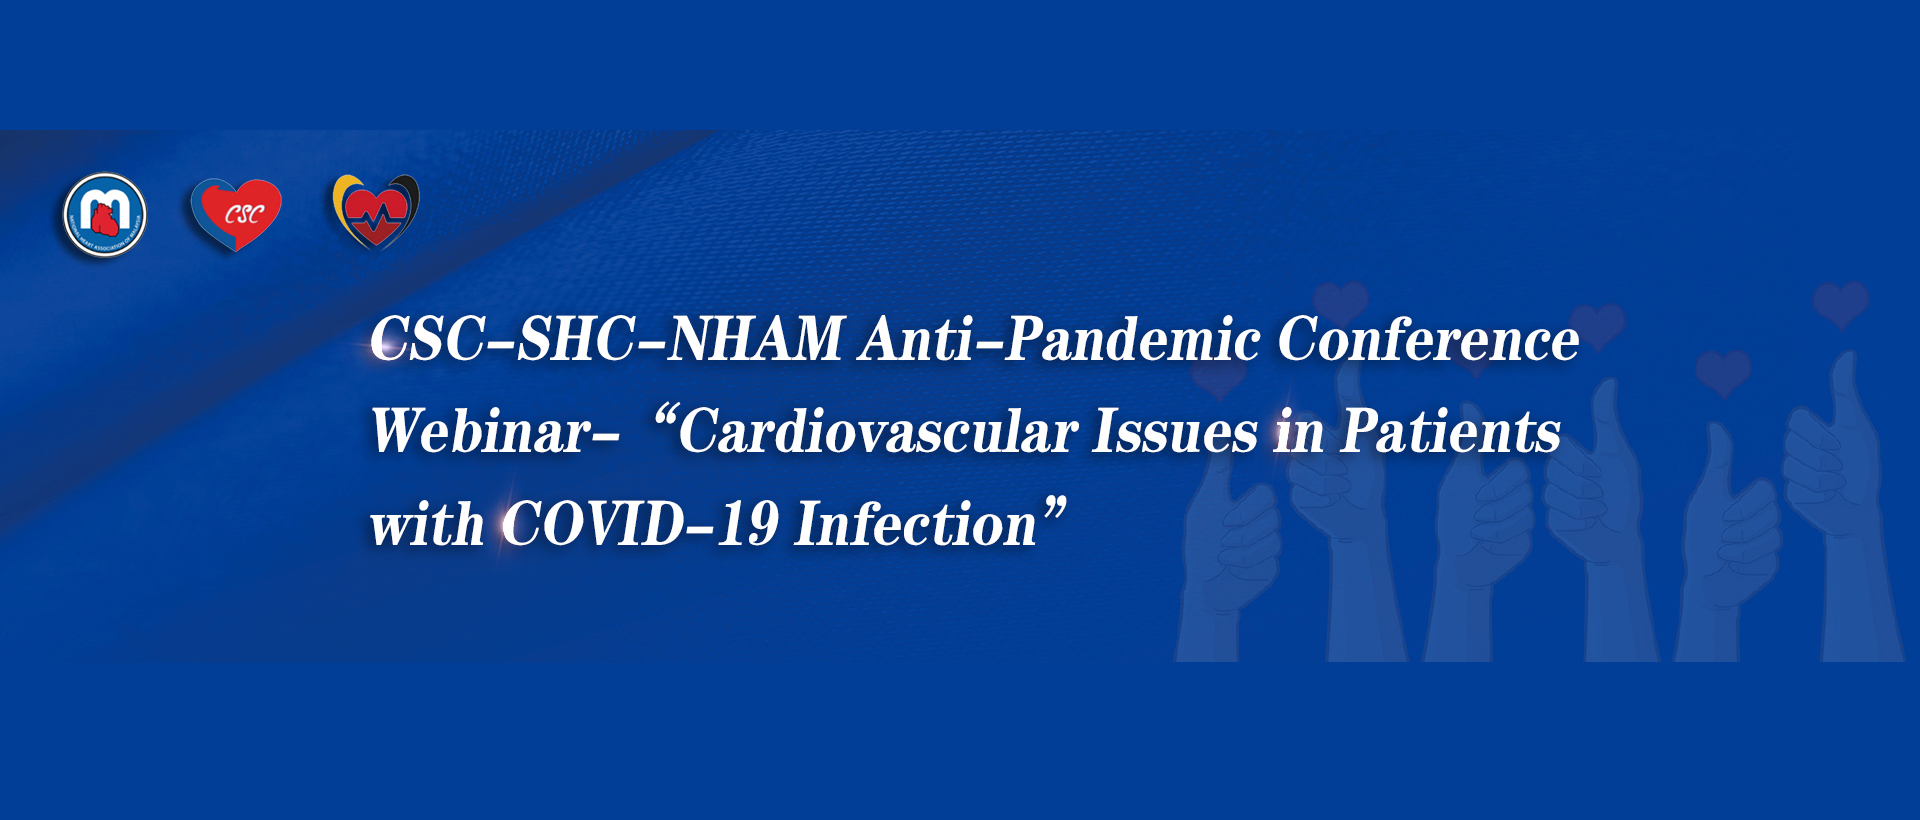 "CSC-SHC-NHAM Anti-Pandemic Conference Webinar- ""Cardiovascular Issues in Patient"